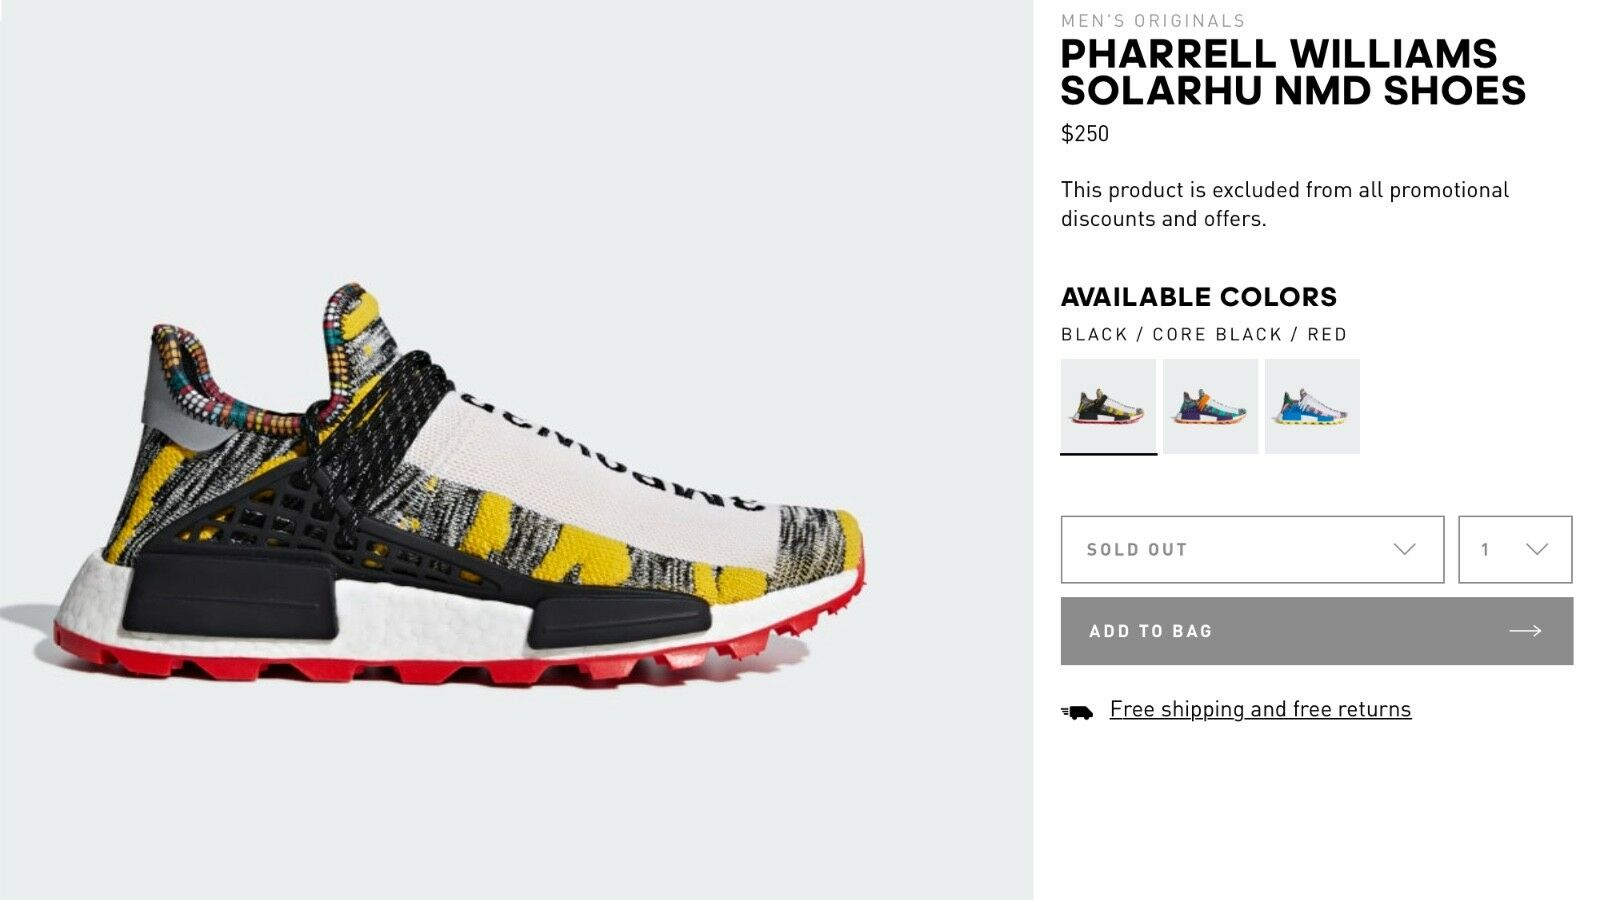 Adidas HU NMD Pharrell Human Race Solar Pack Red Red Red BB9527US Size 9 a51bf9